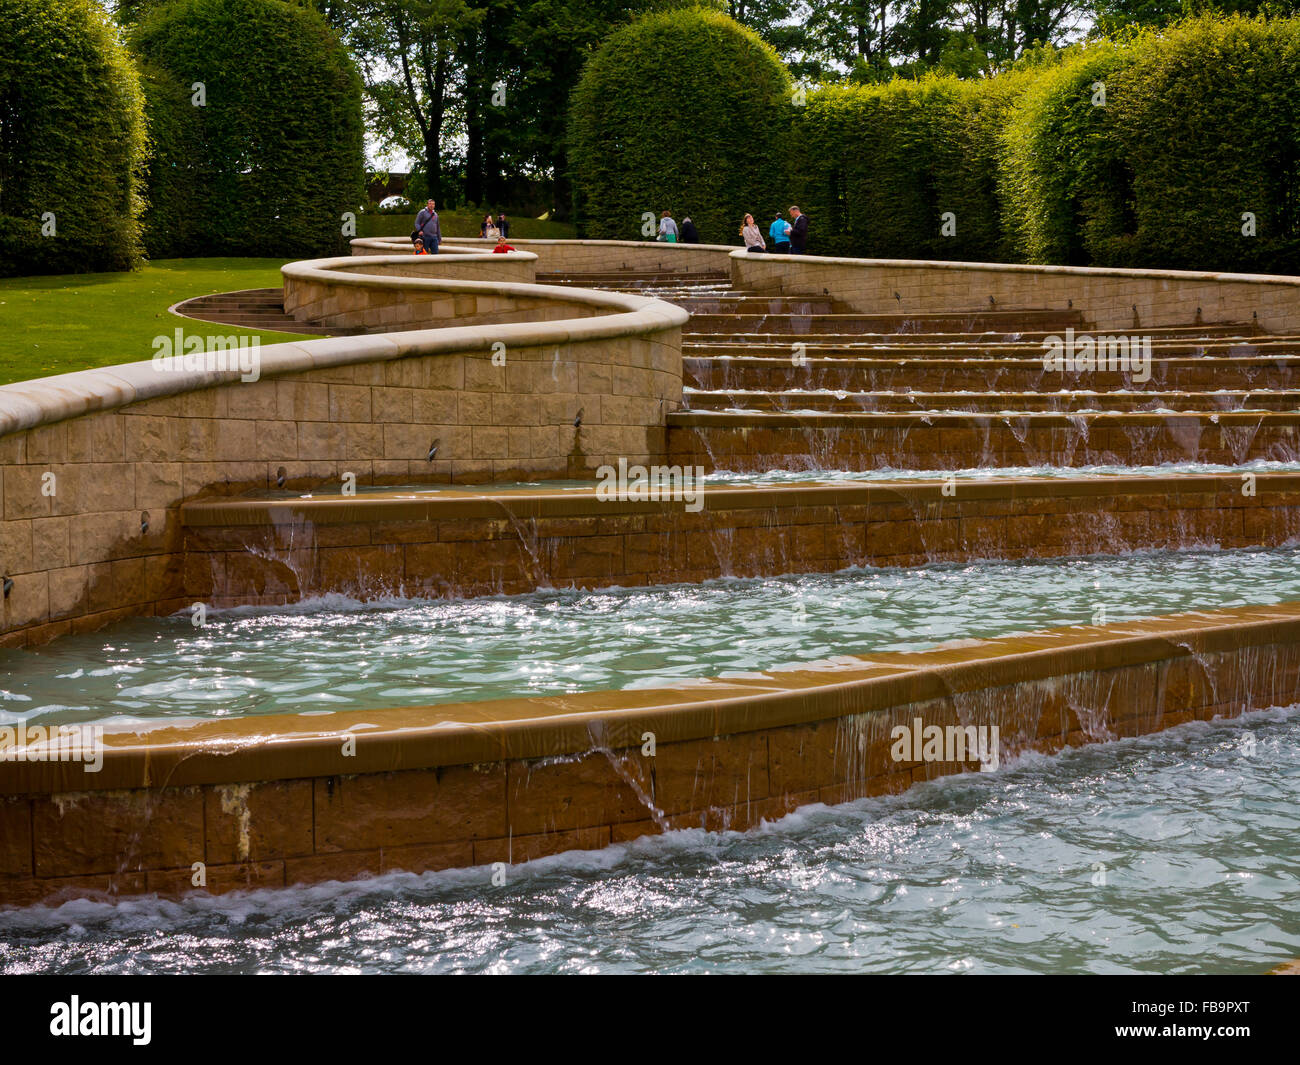 The Water Cascade feature at Alnwick Gardens in Northumberland England UK designed by Jacques and Peter Wirtz - Stock Image